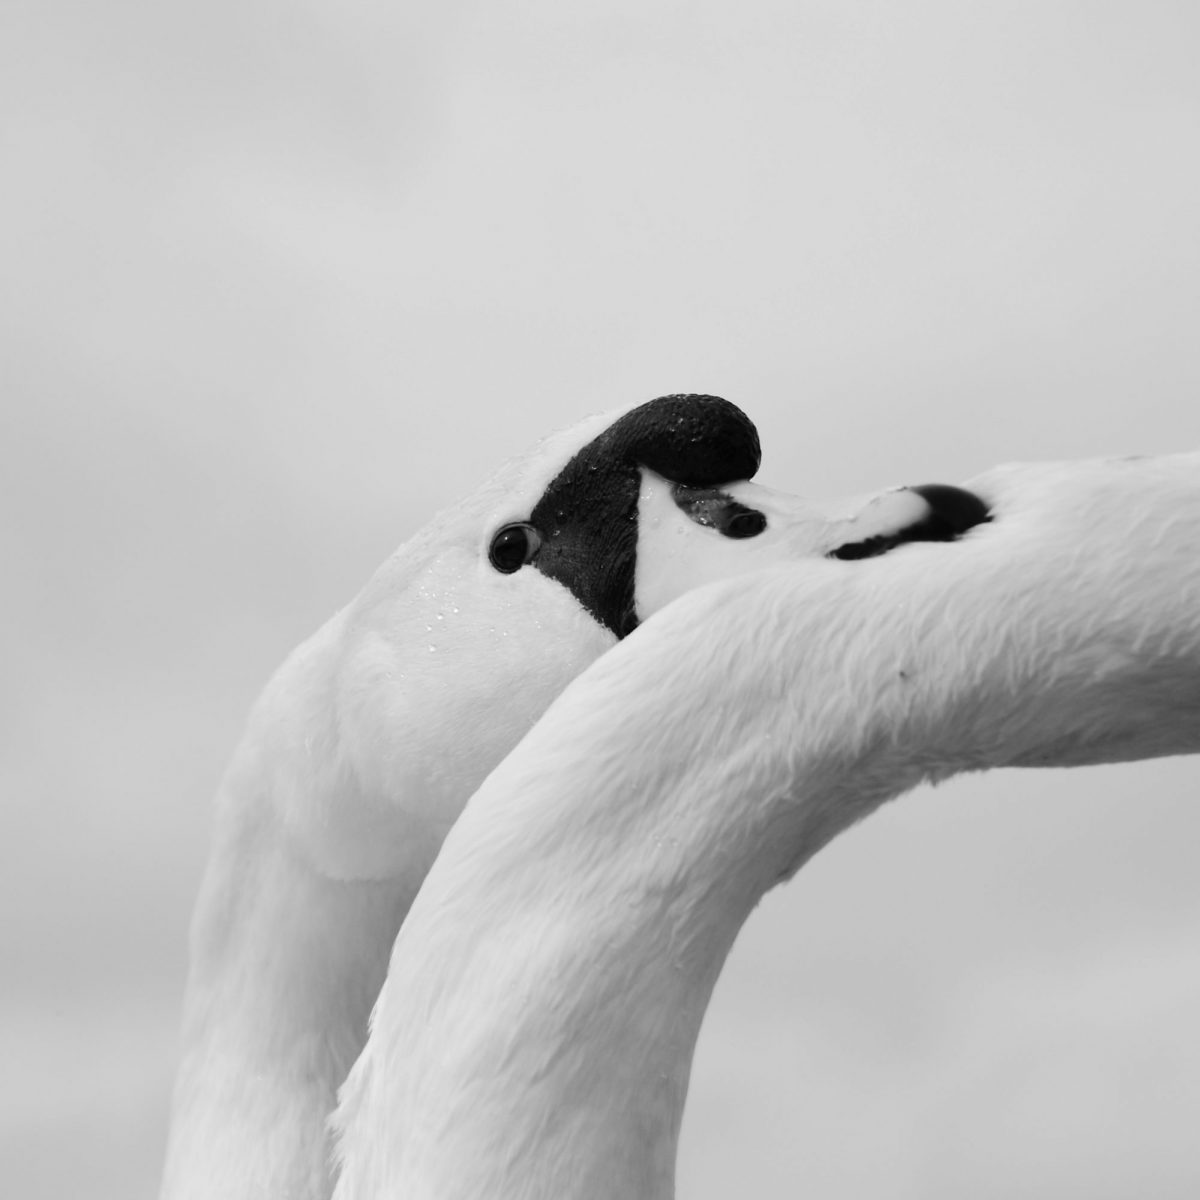 Swan biting another swans neck